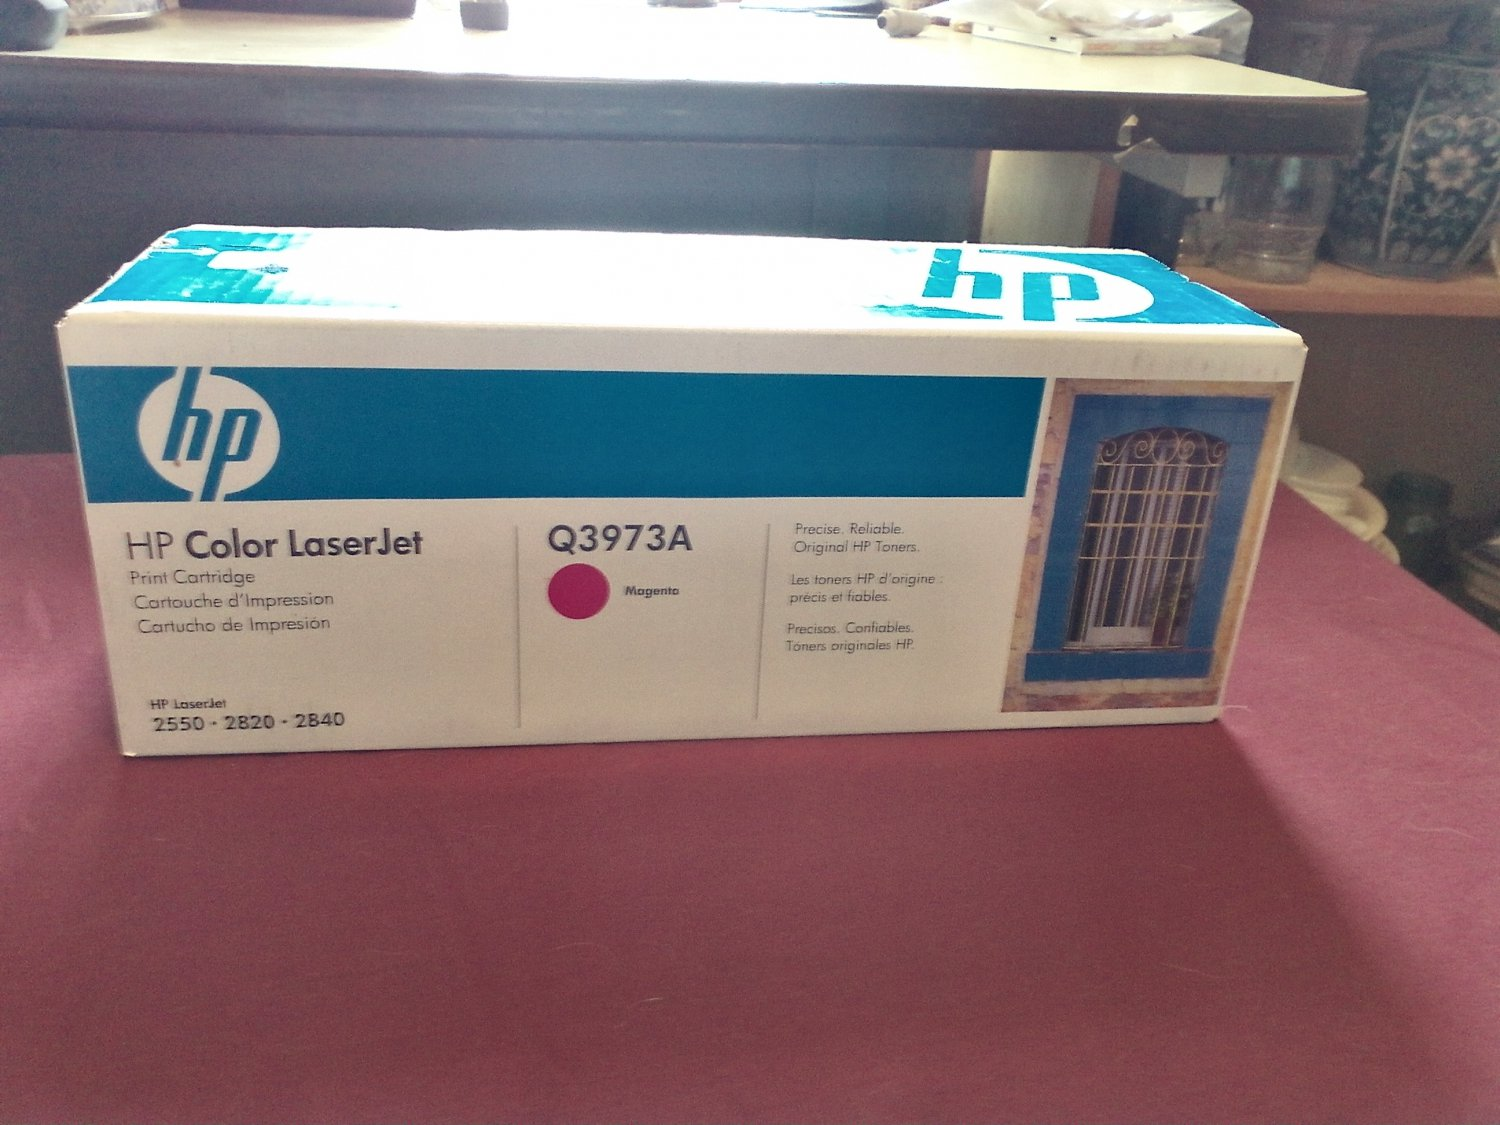 HP Color LaserJet Q3973A Magenta Print Cartridge NIP Hewlett Packard (SG)